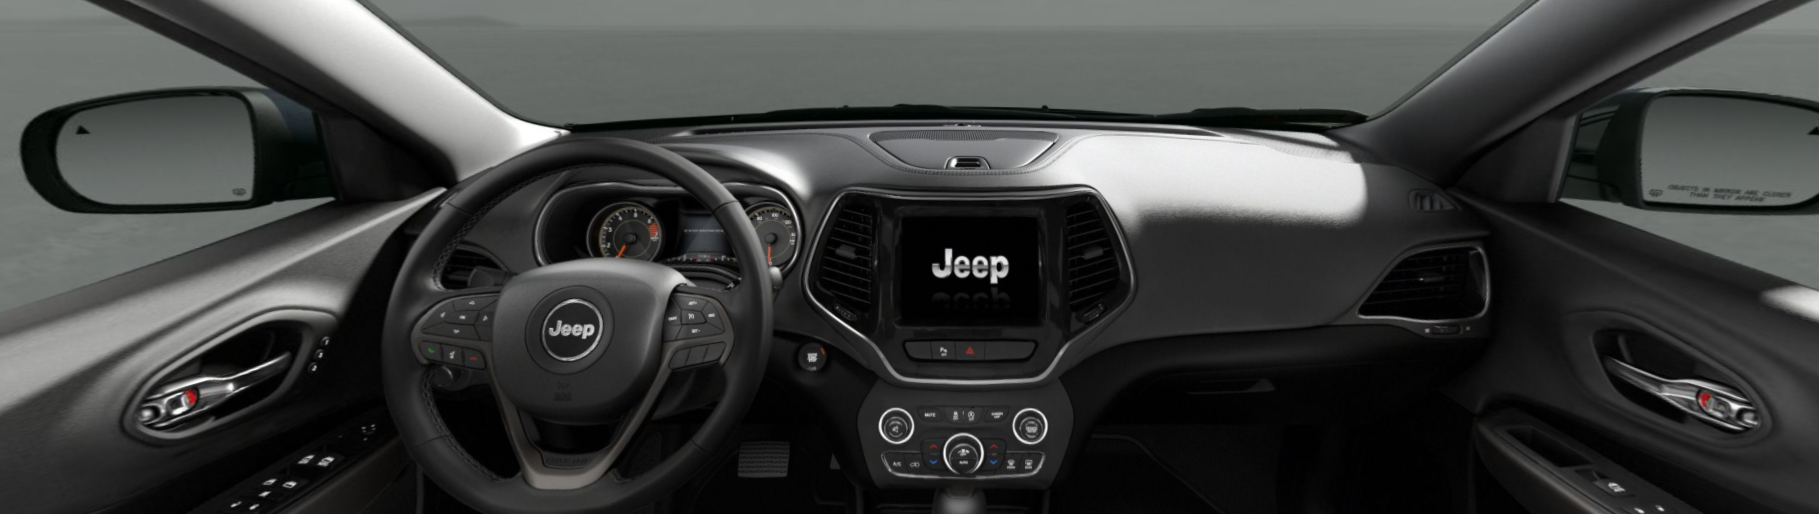 2020 Jeep Cherokee Limited Front Interior Dash Picture